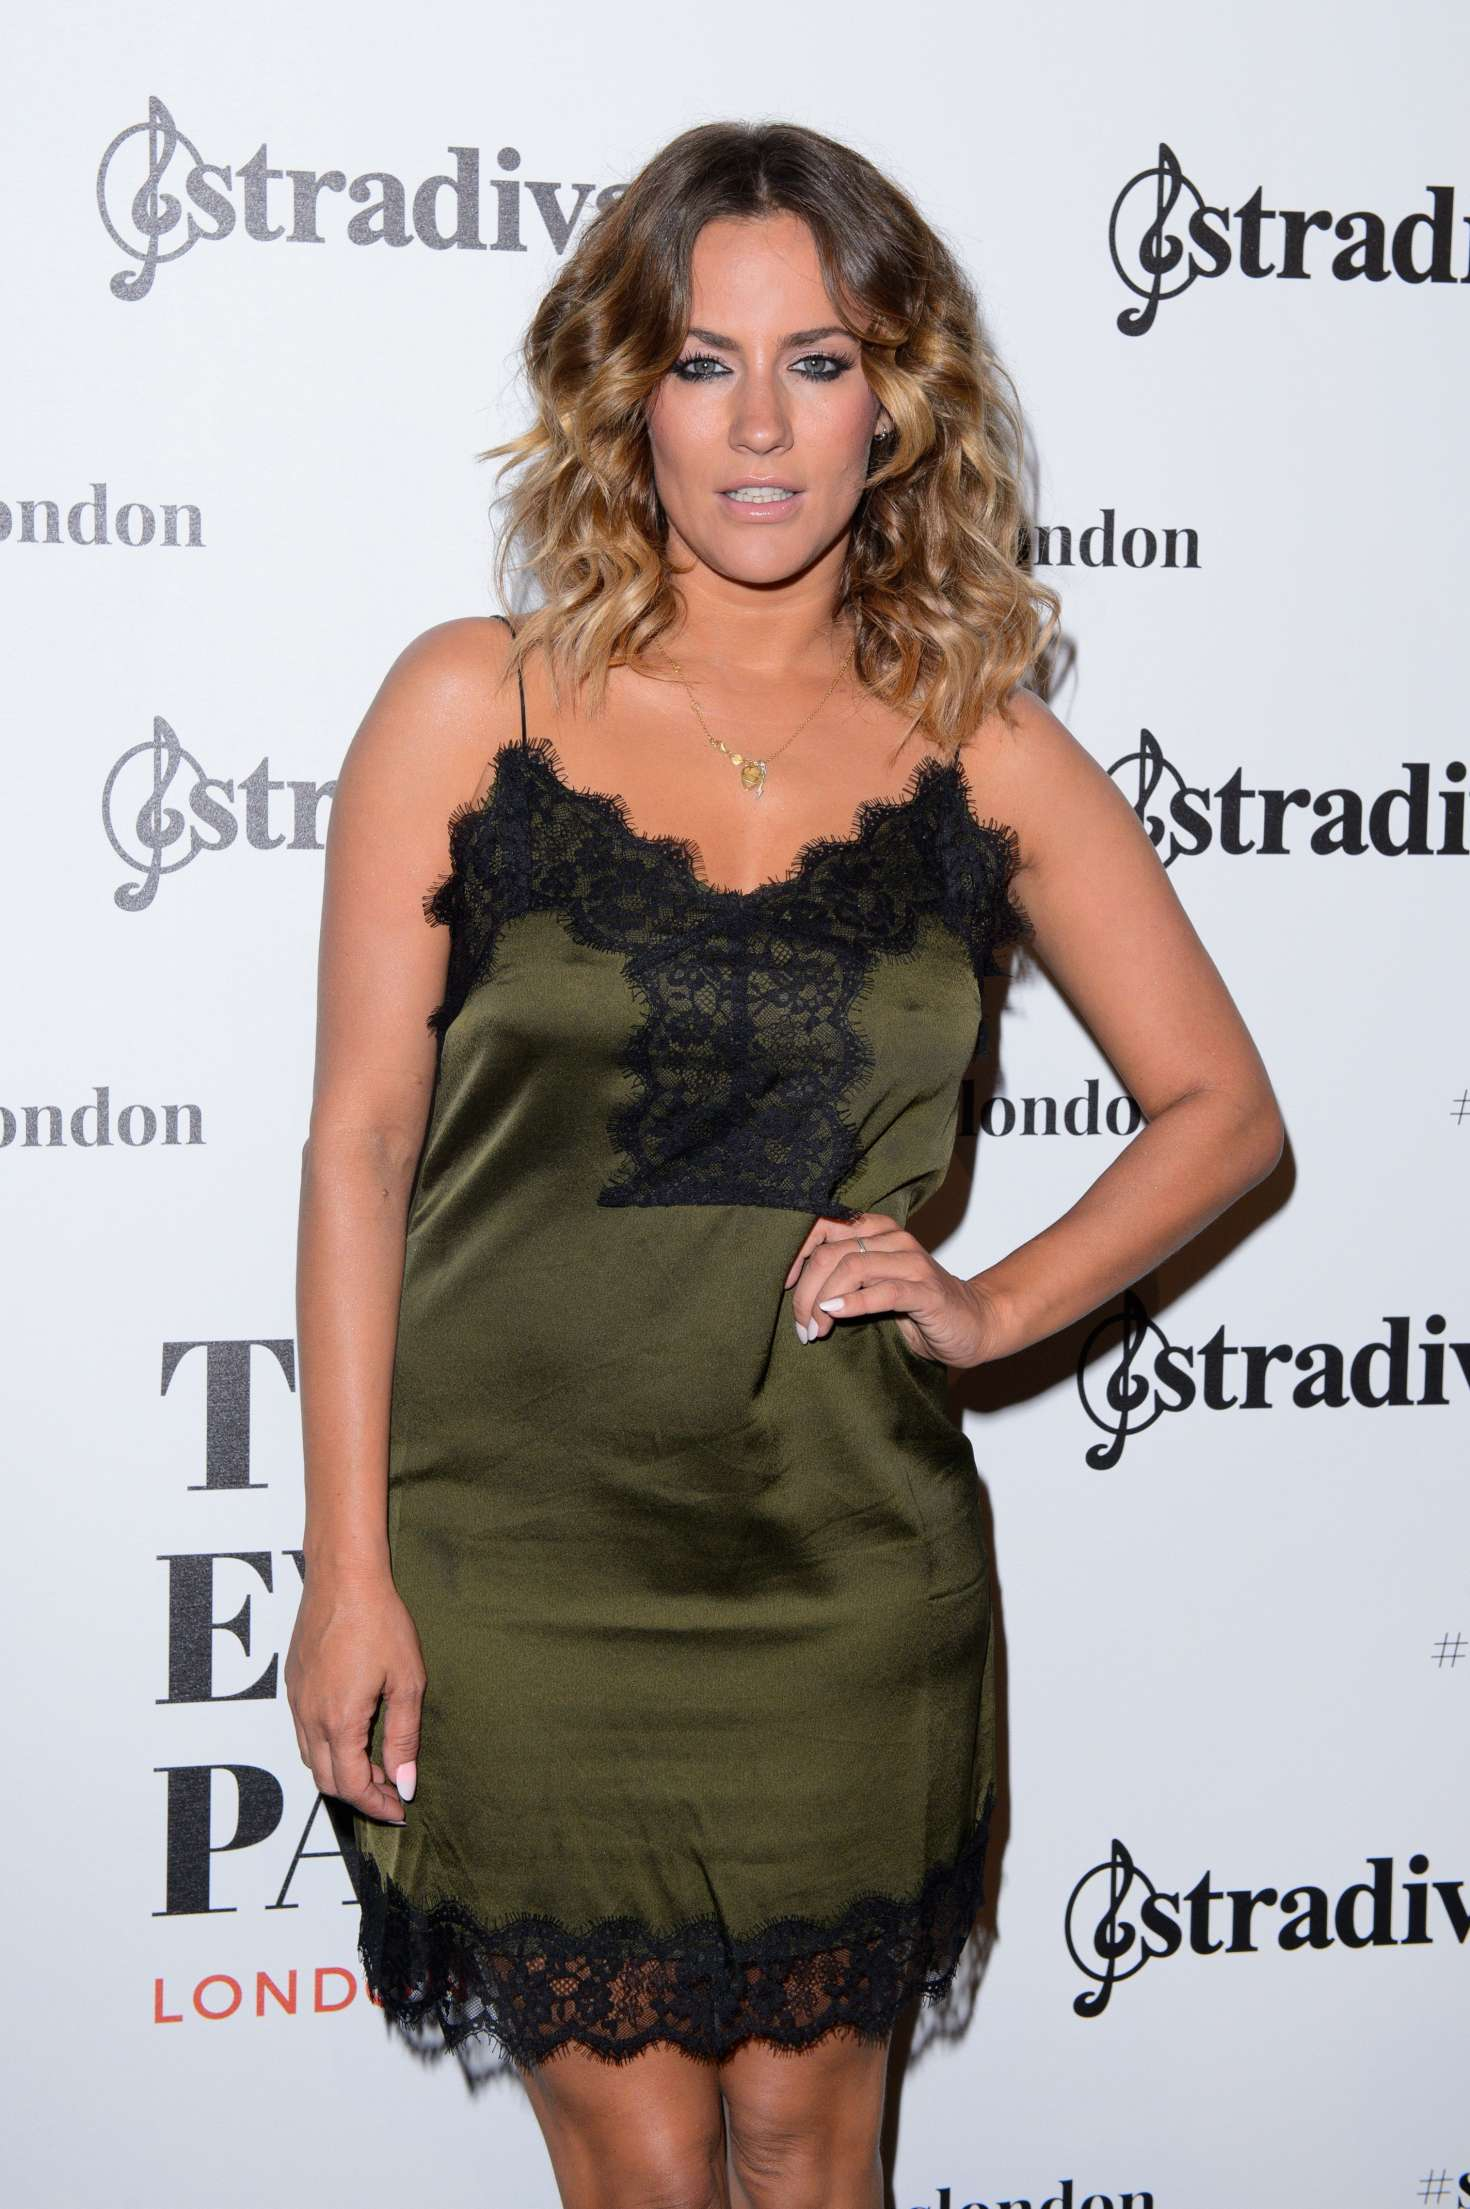 Caroline Flack - Stradivarius Cocktail Party SS 2017 in London